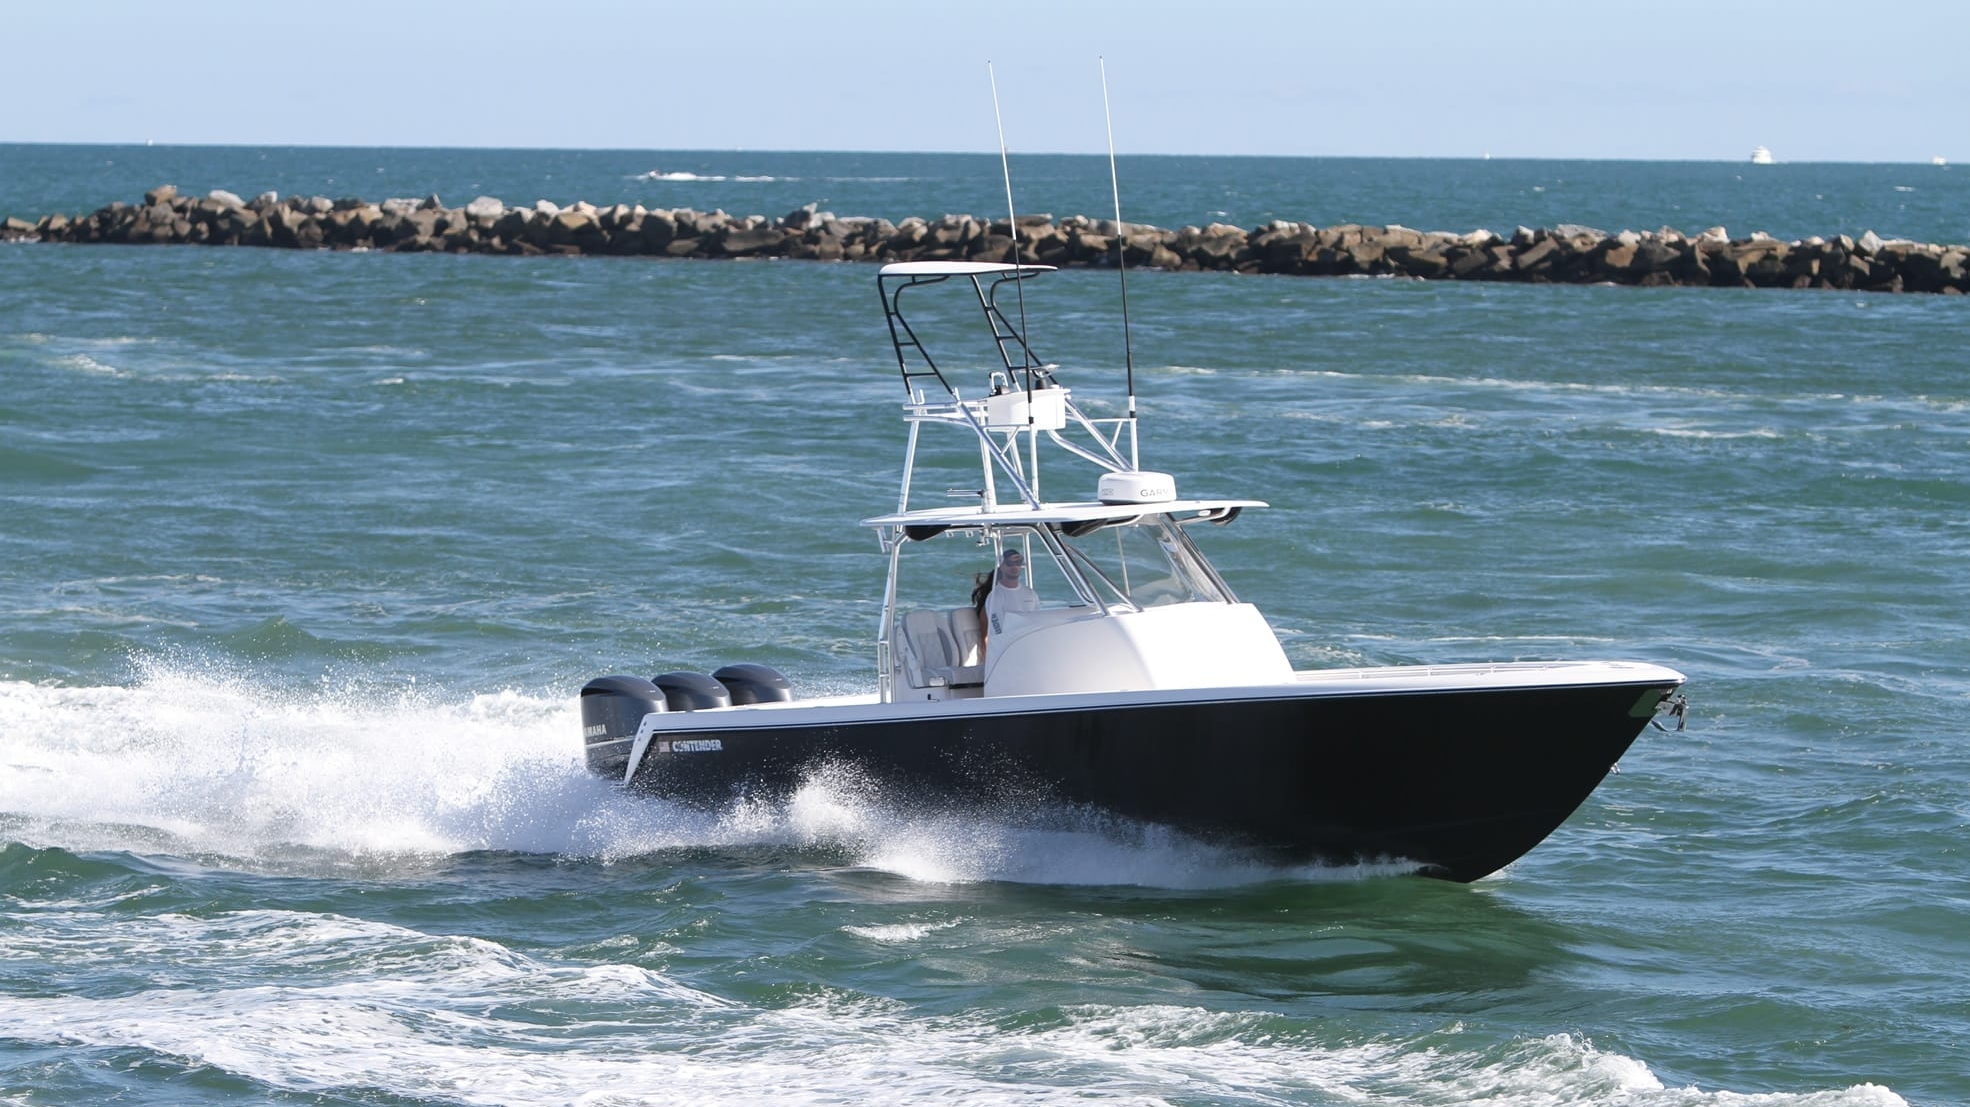 2017 contender 39 fisharound pictures photos wallpapers for Best fishing boats 2017